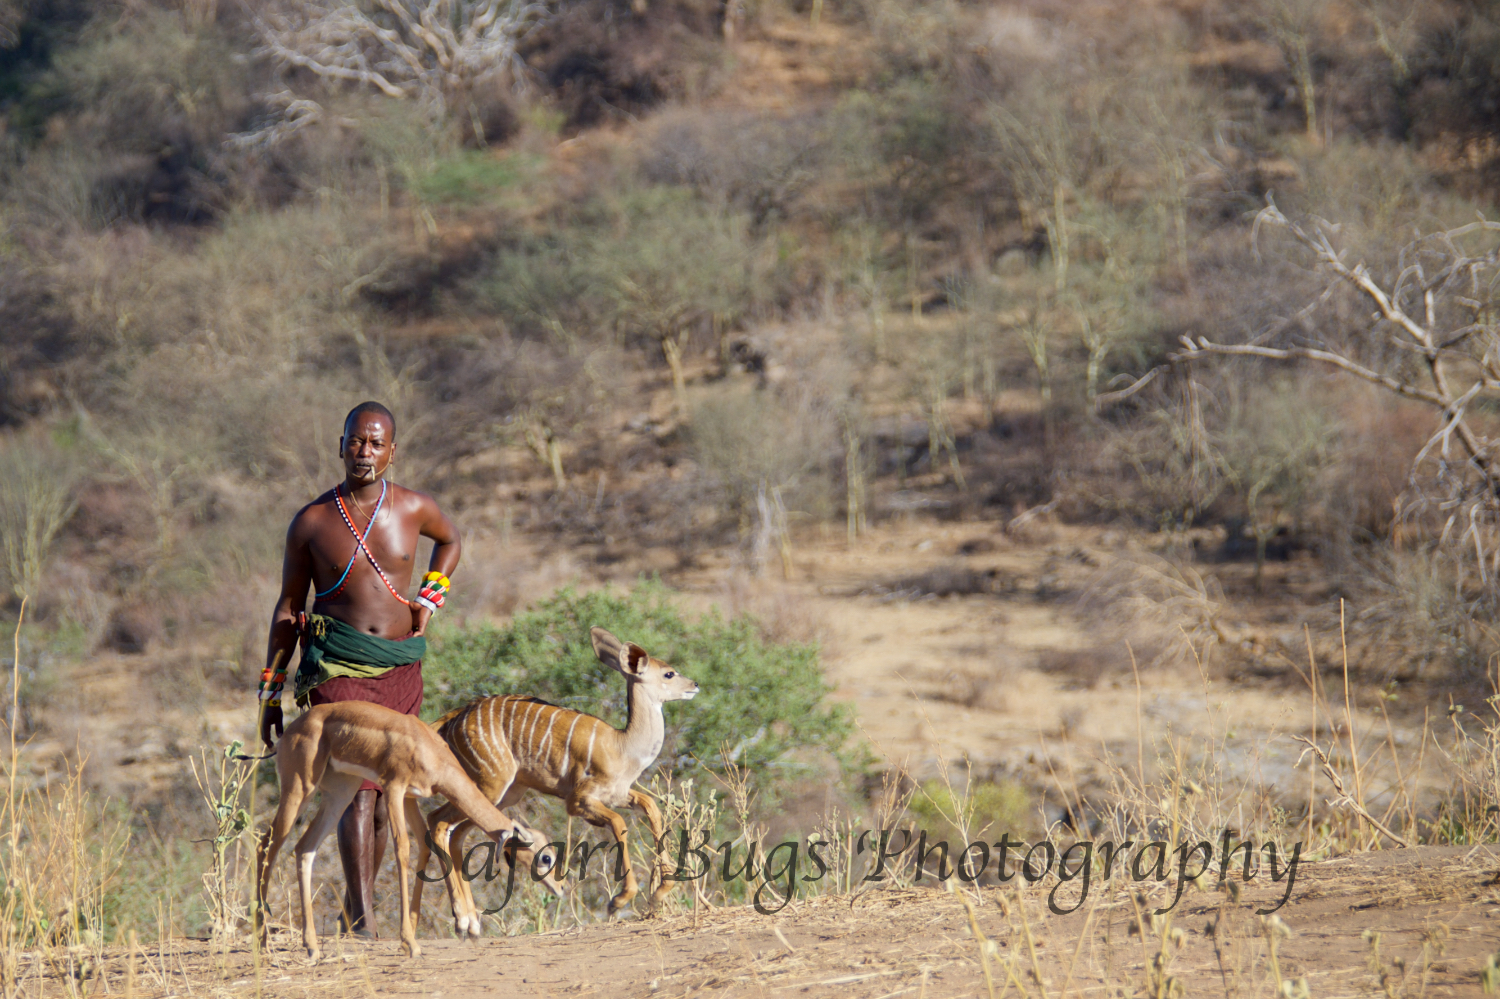 With the Baby Kudu and Gerenuk